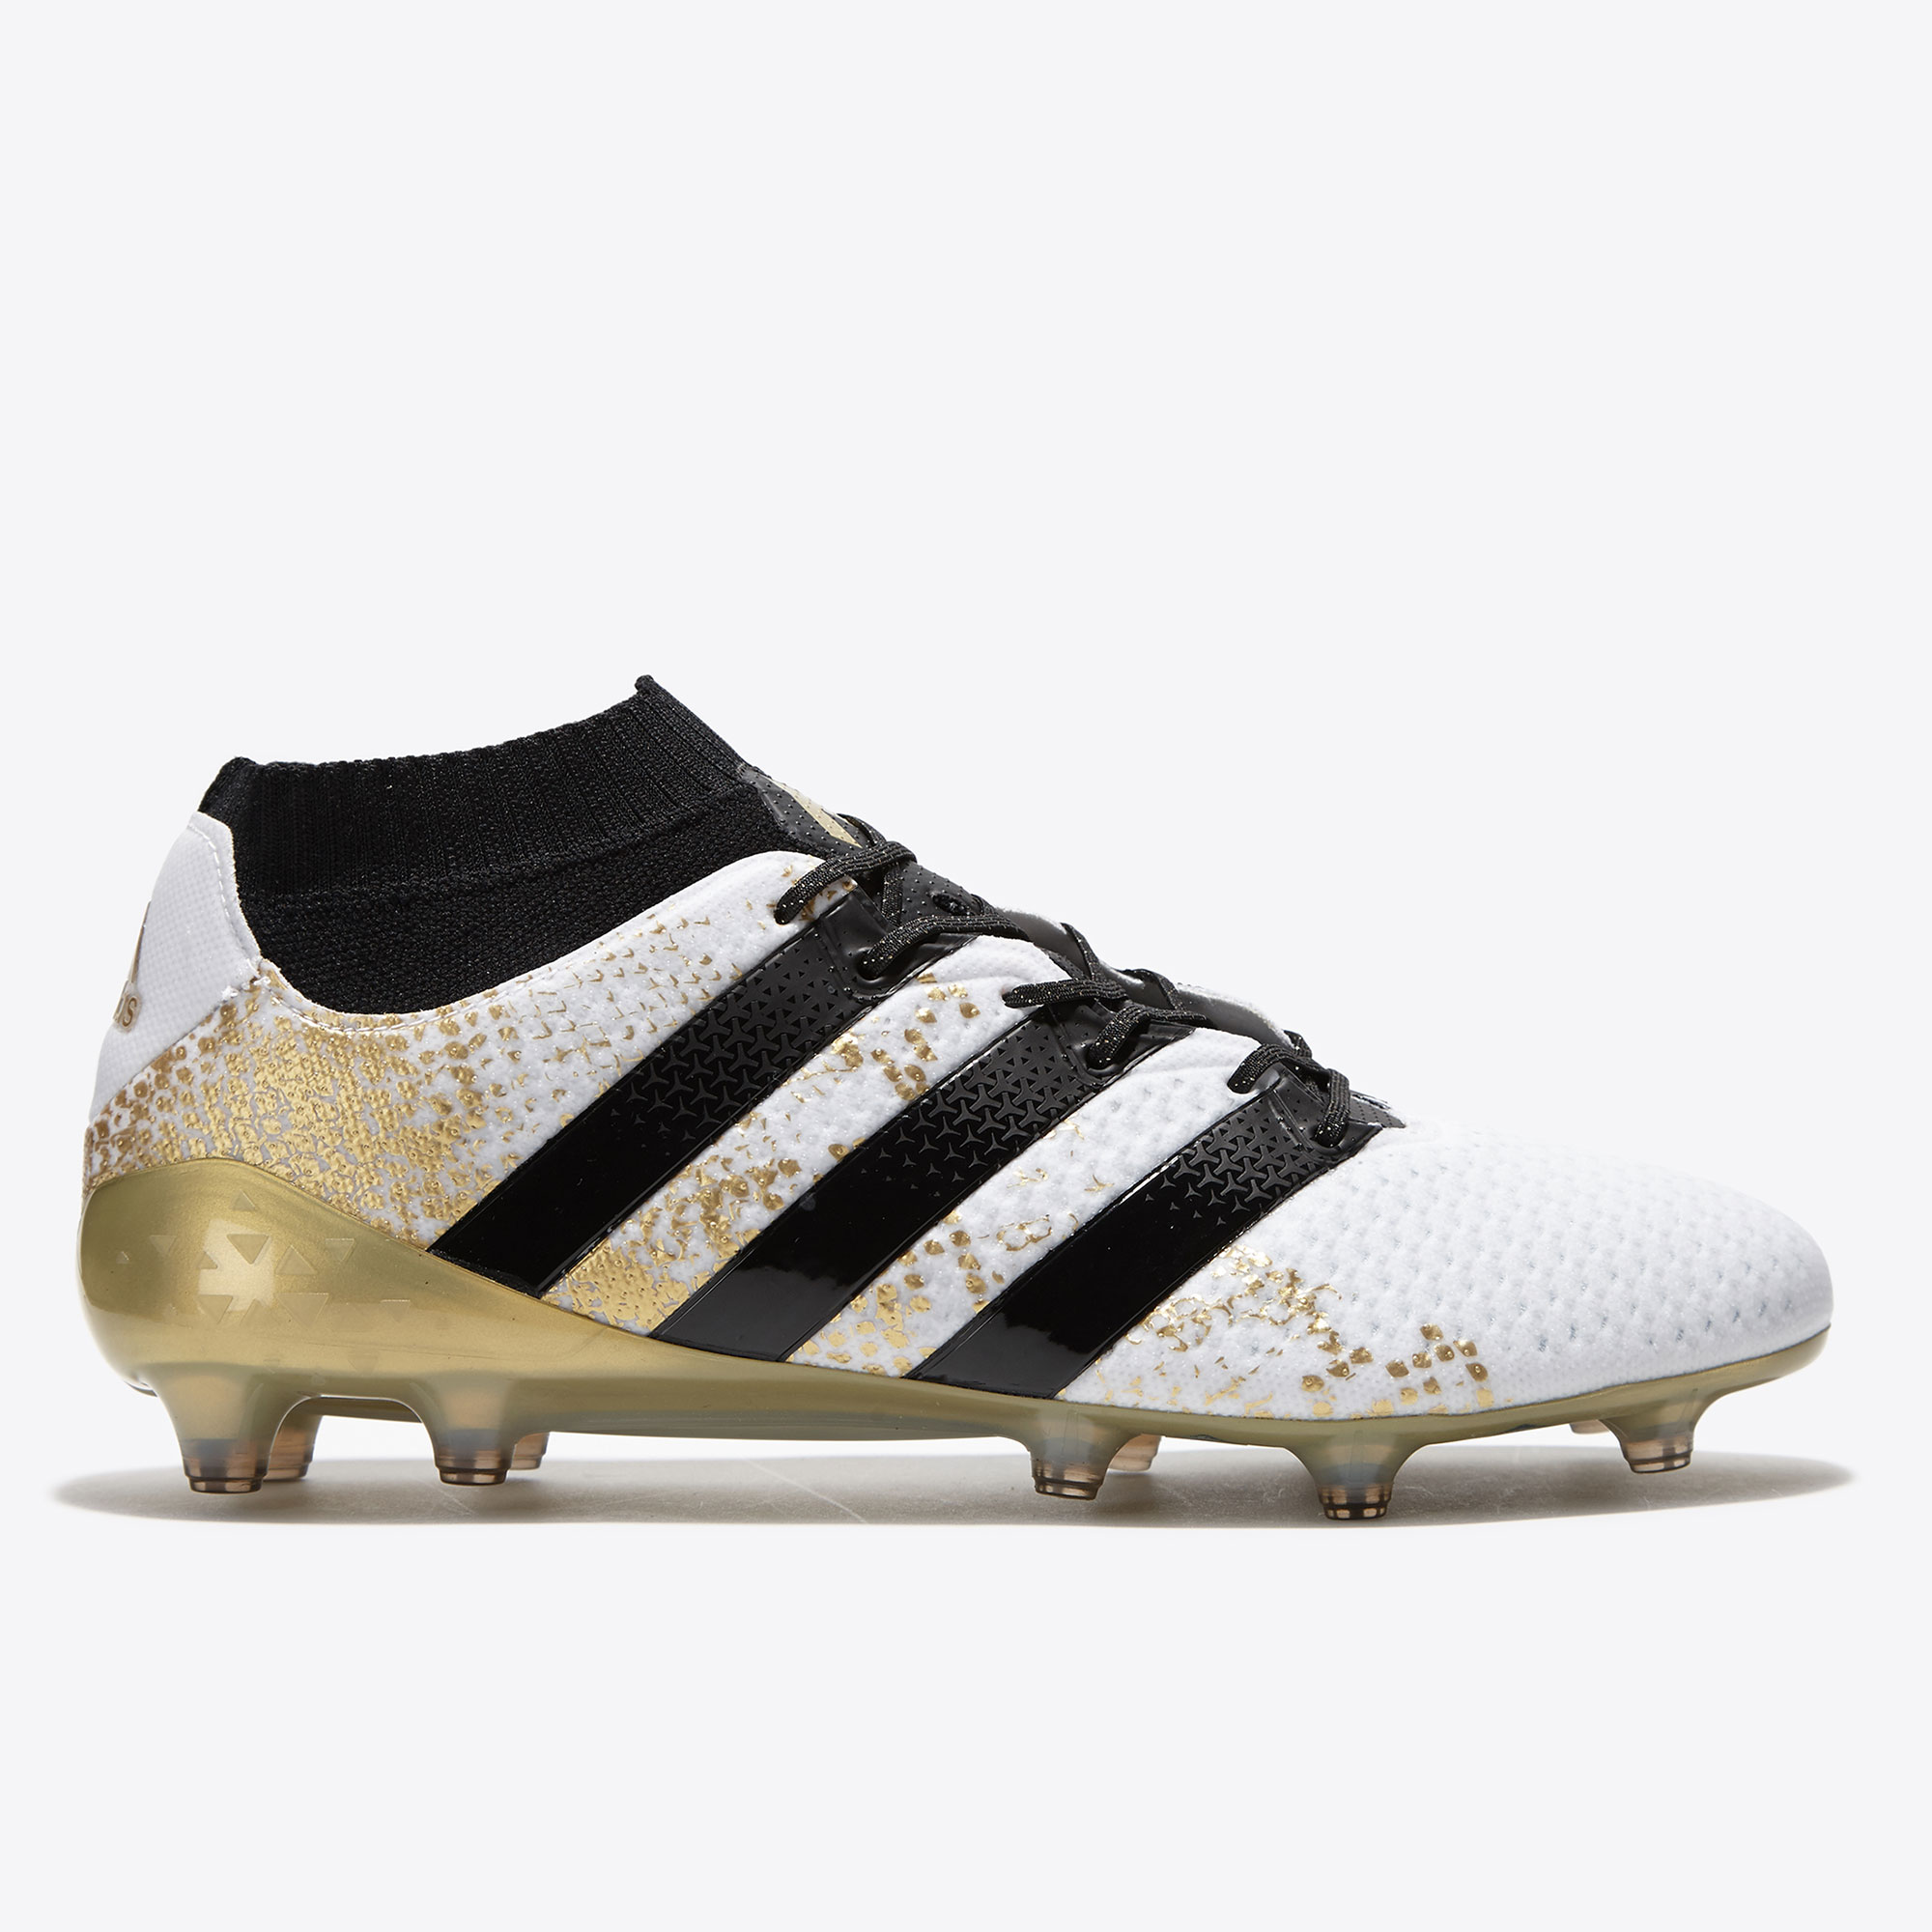 Image of adidas Ace 16.1 PrimeKnit Firm Ground Football Boots - White/Core Blac